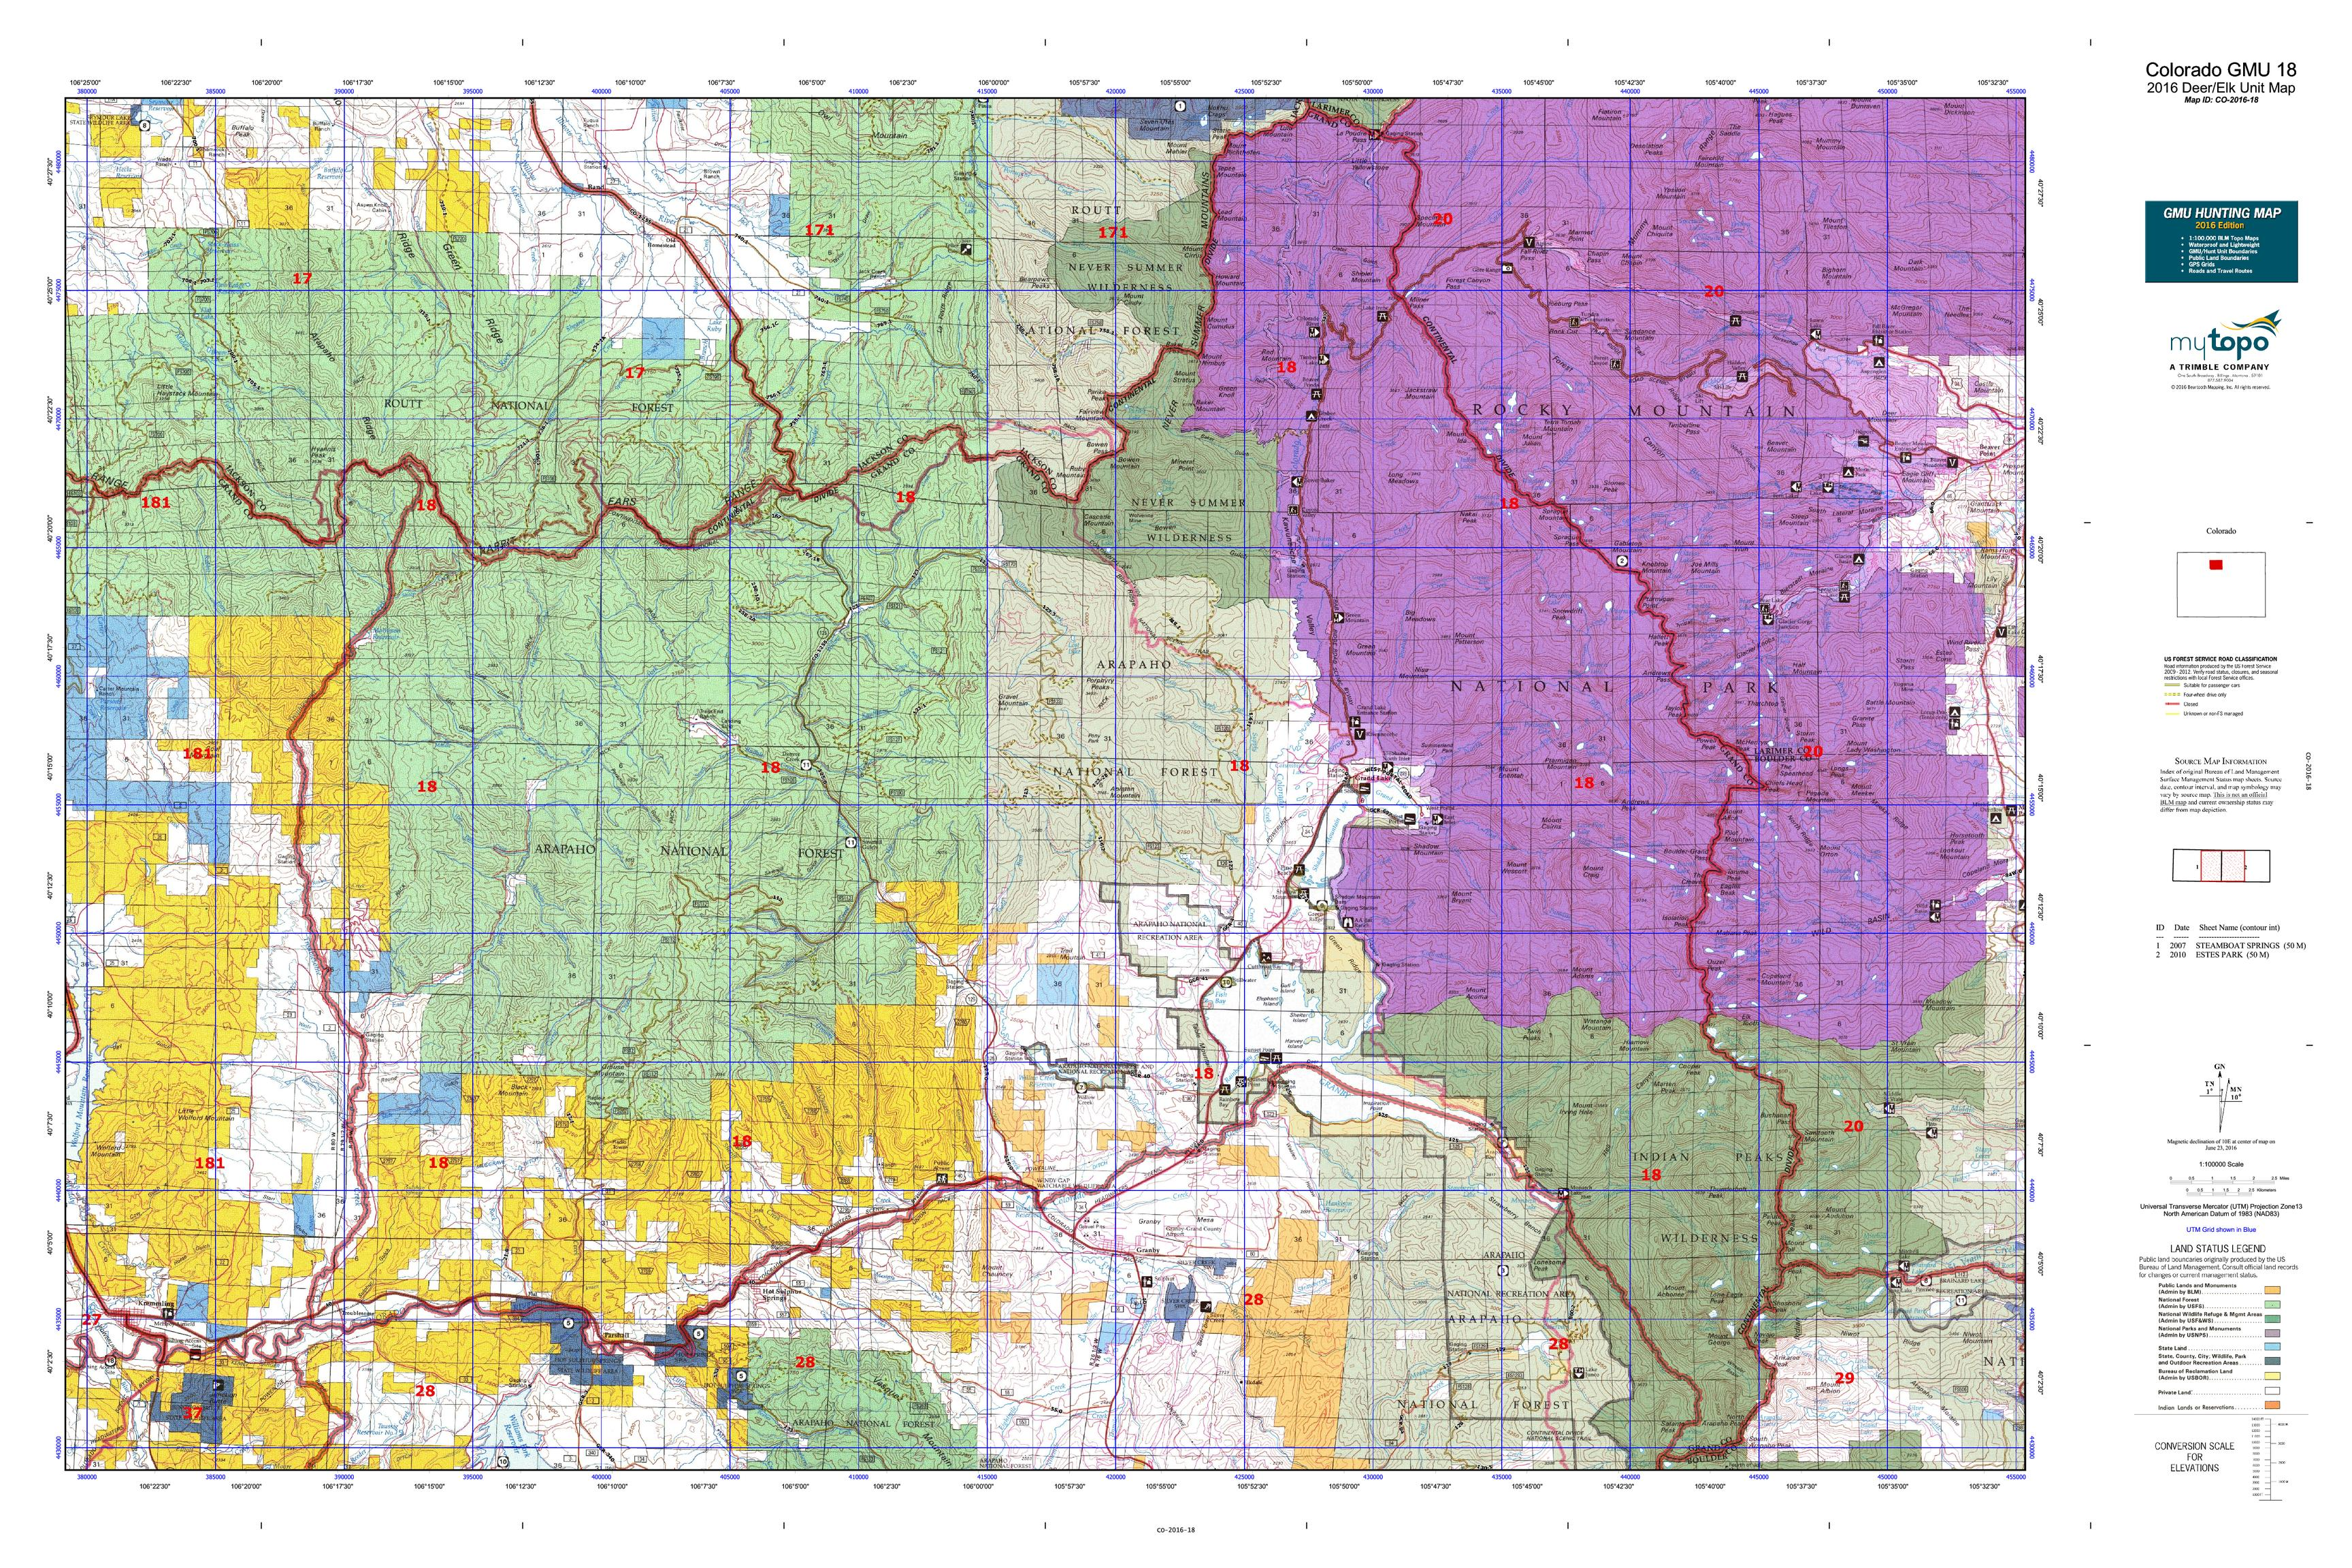 Colorado GMU 18 Map  MyTopo